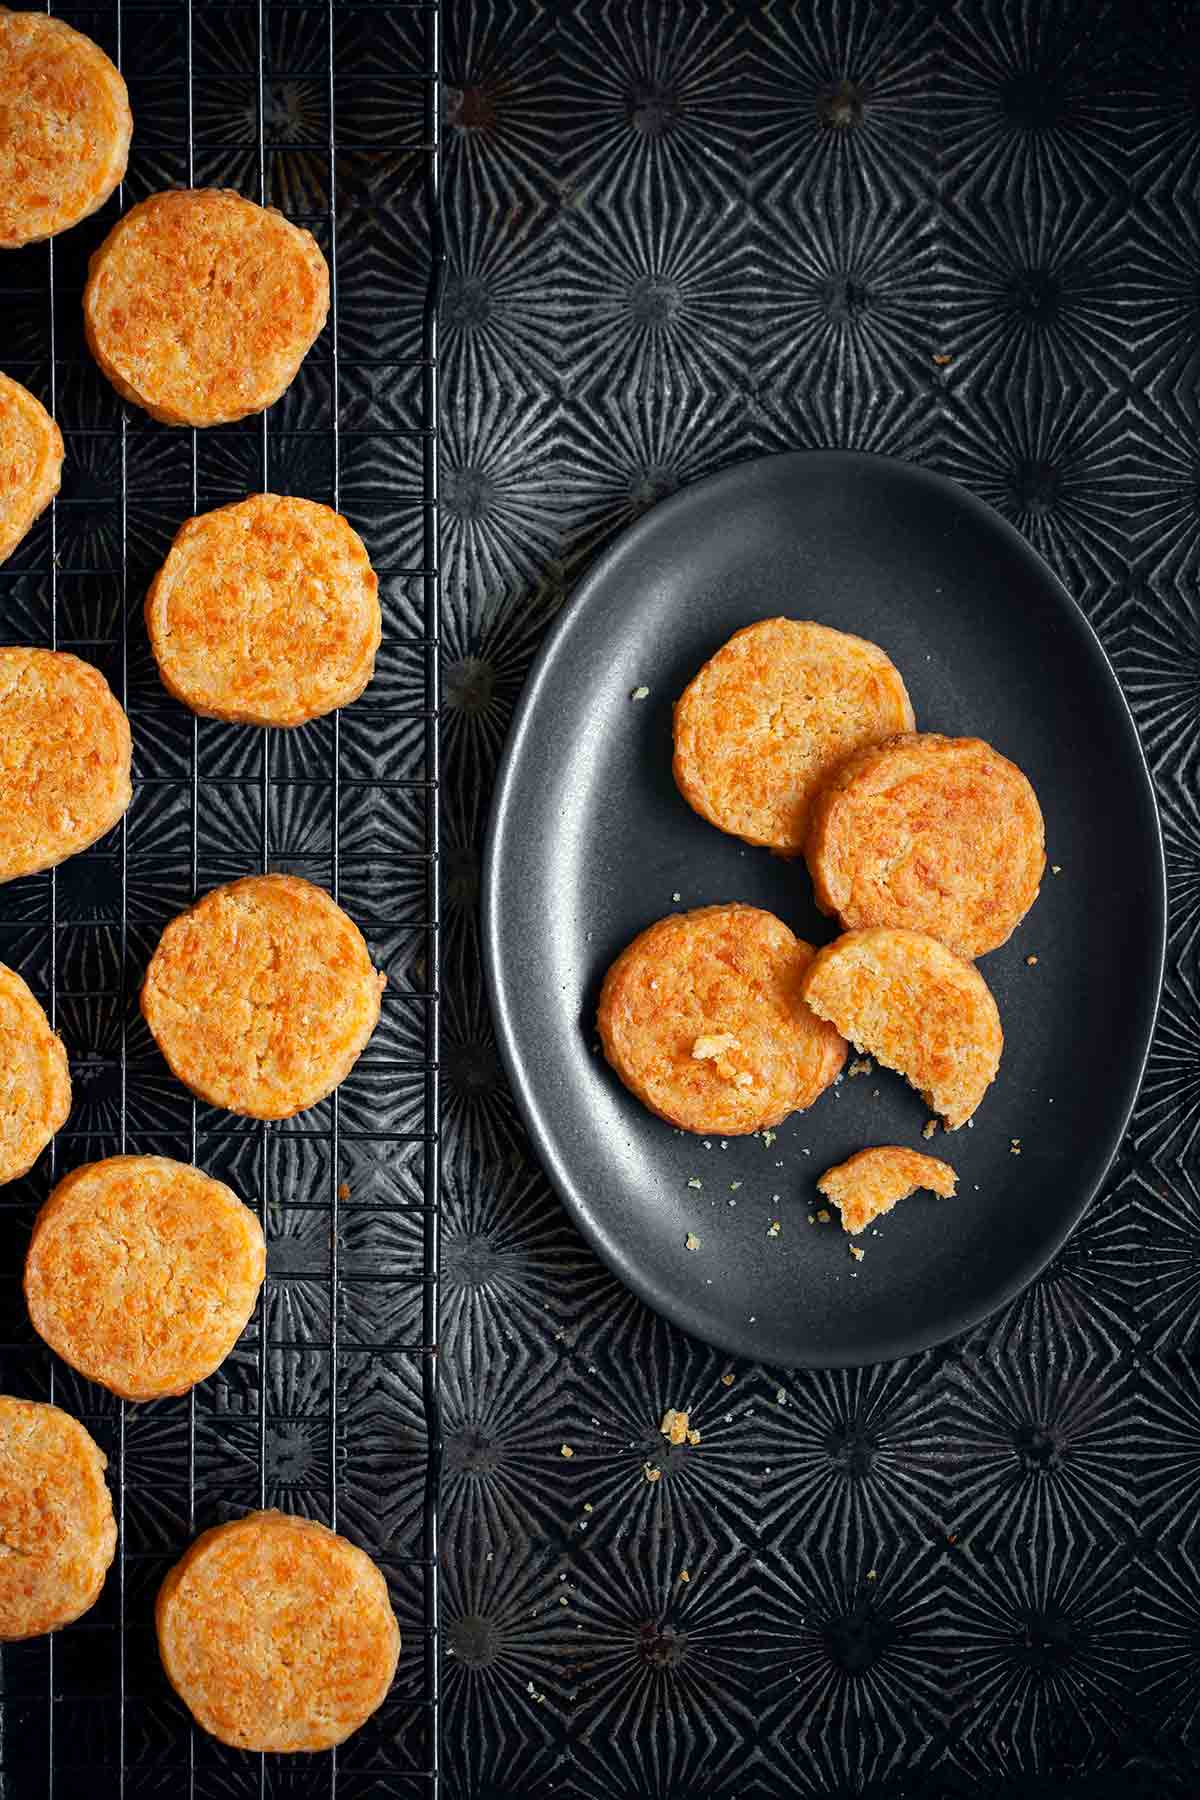 Cheddar-Parmesan crackers on a black wire rack with a few on a black oval plate beside the rack.